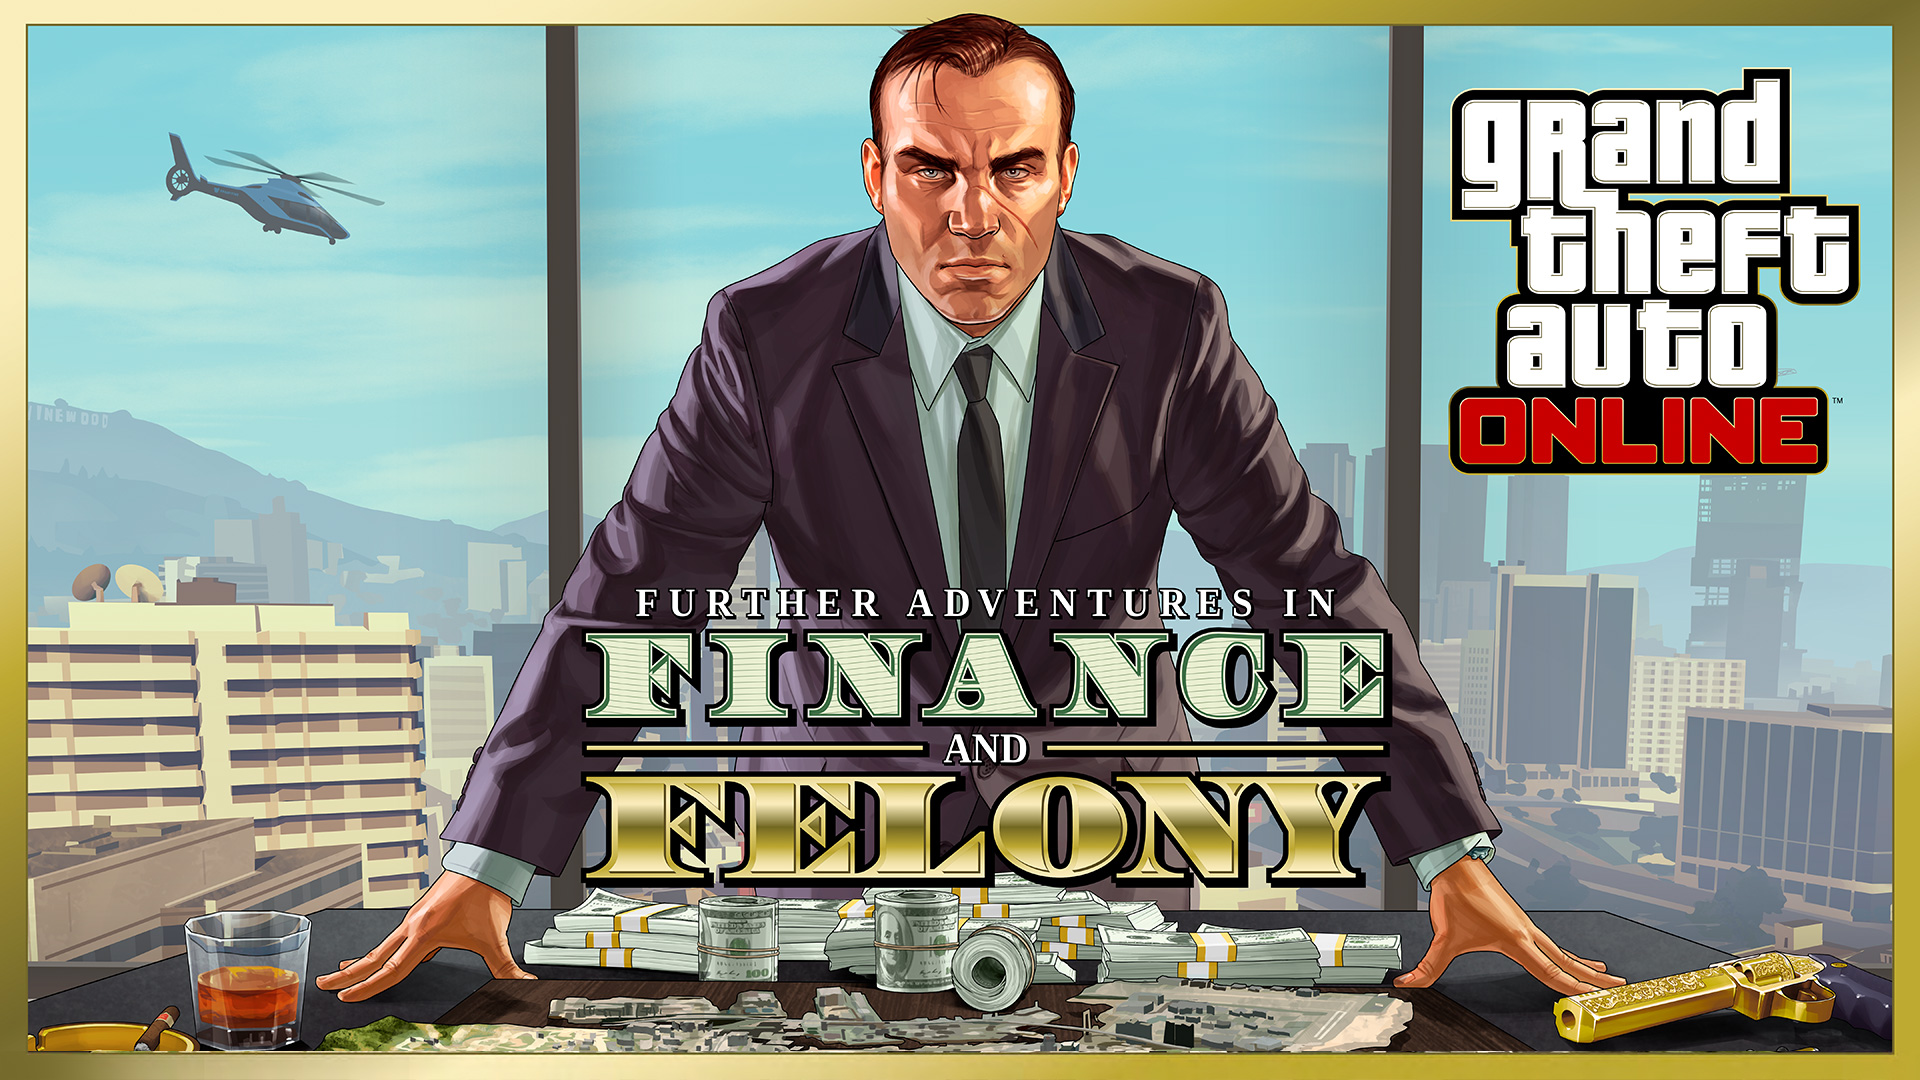 GTA Online: Further Adventures in Finance and Felony Now Available - Rockstar Games